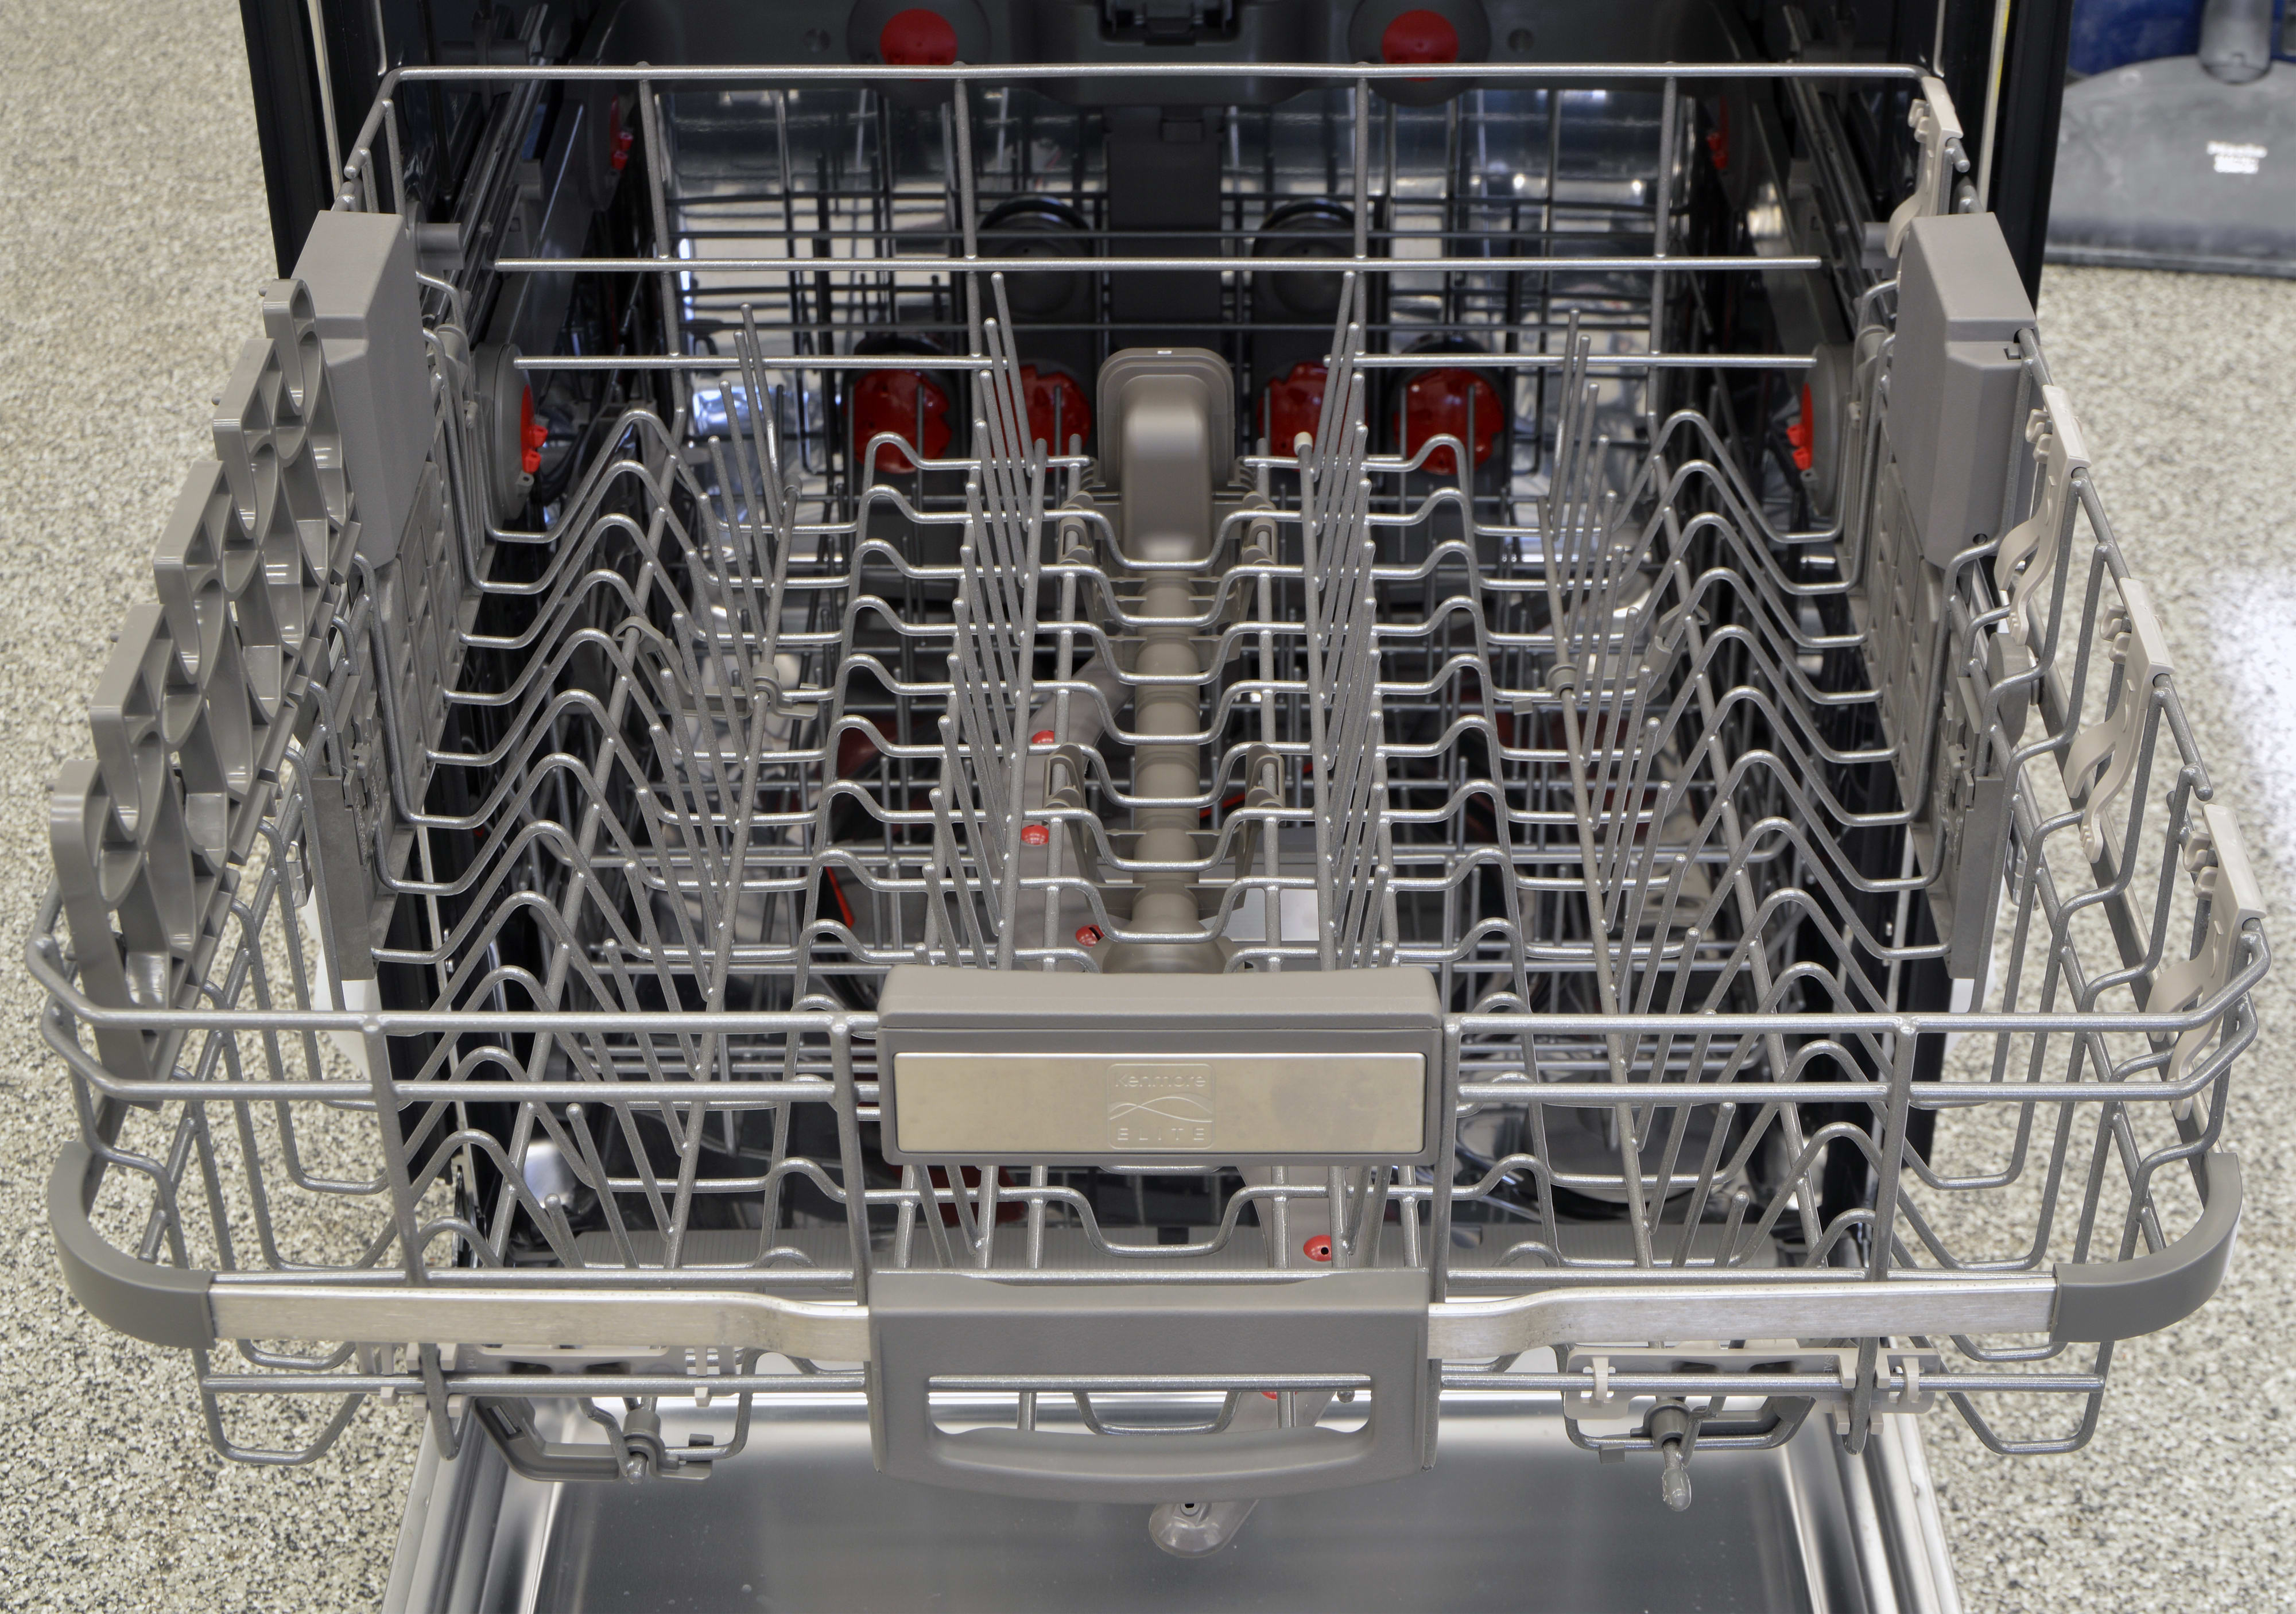 The Kenmore 14823's upper rack, which is full of movable parts